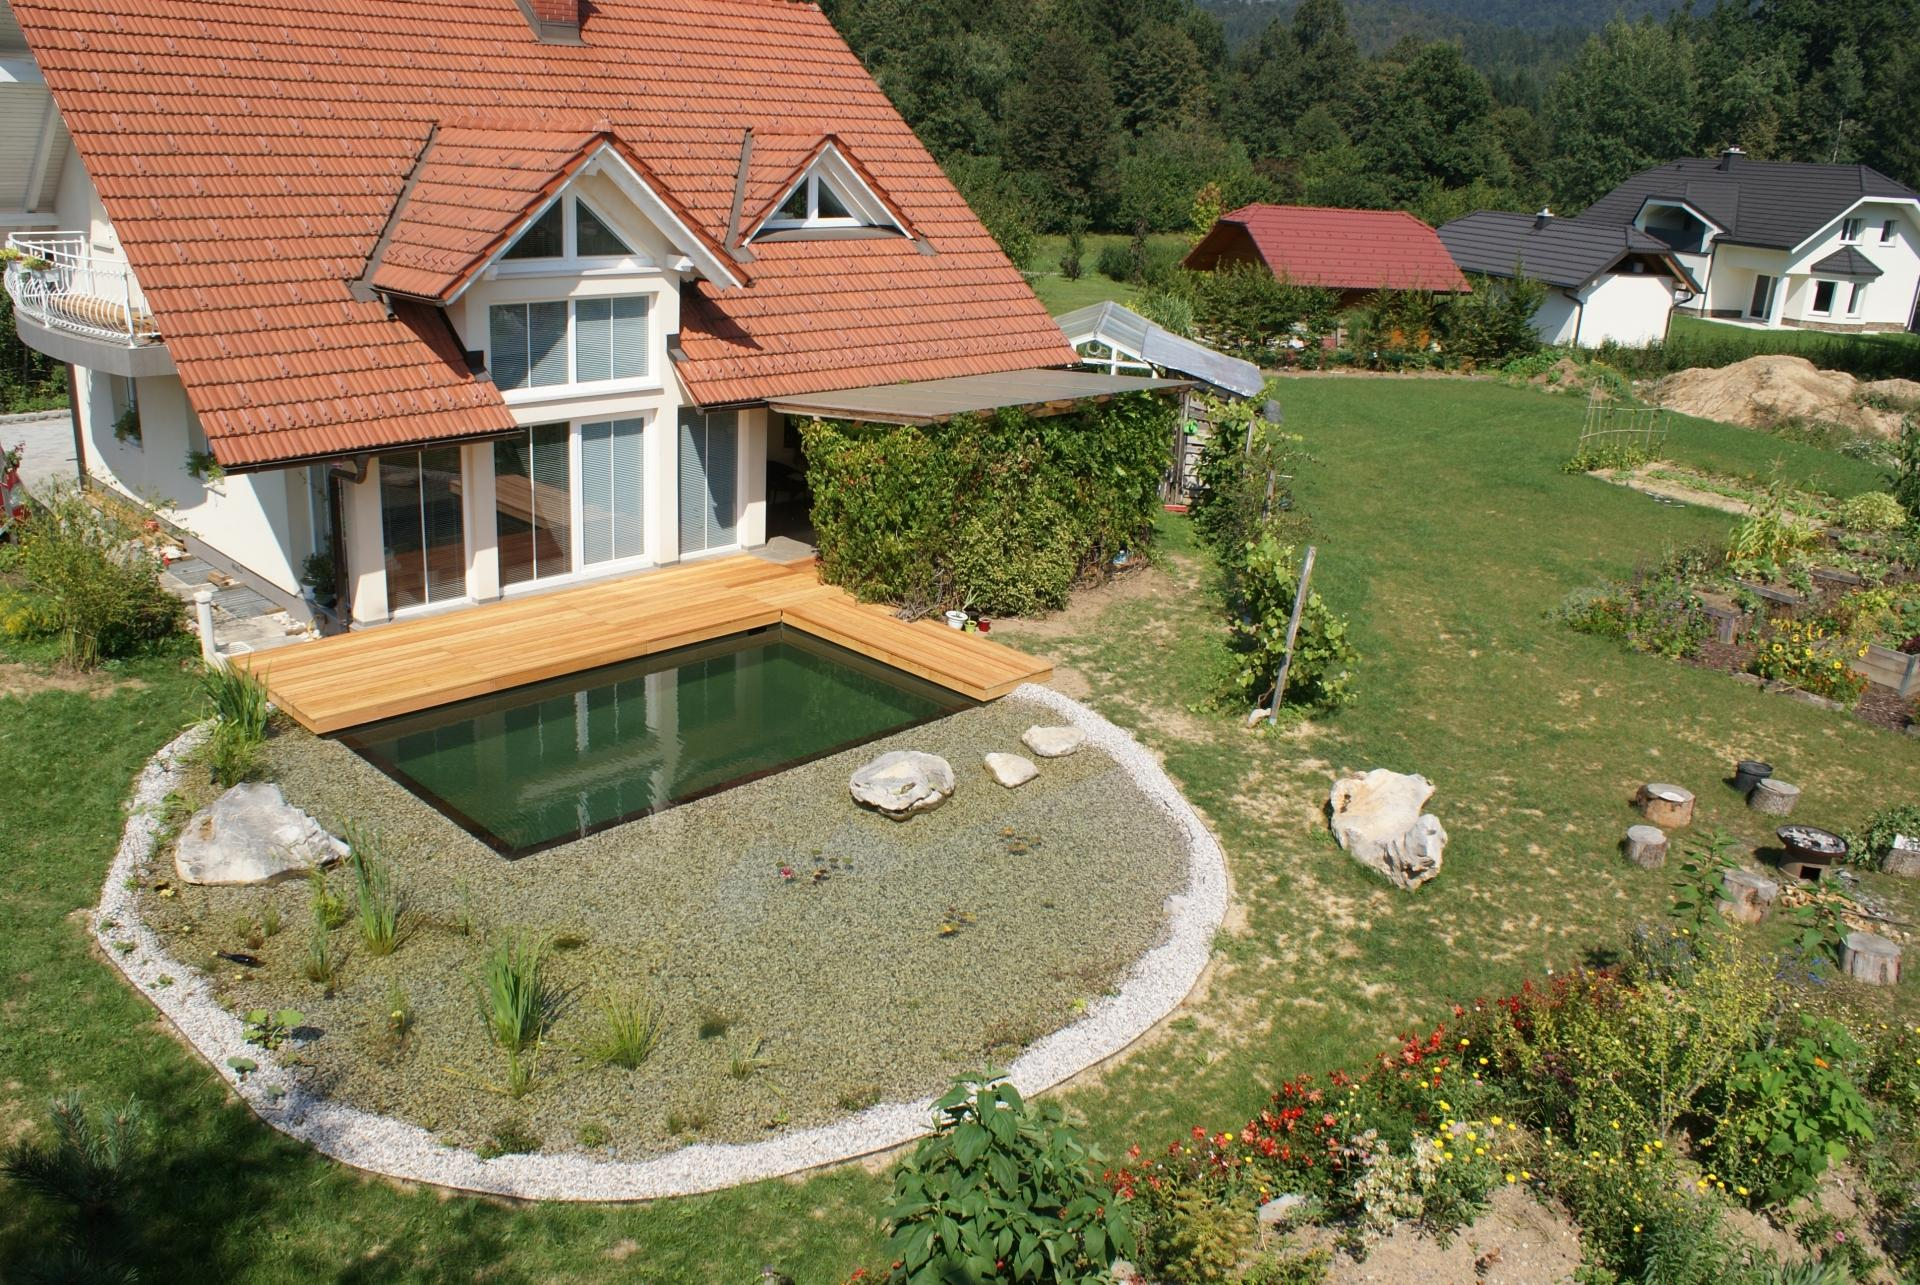 Wooden Terraces of Excellent Quality